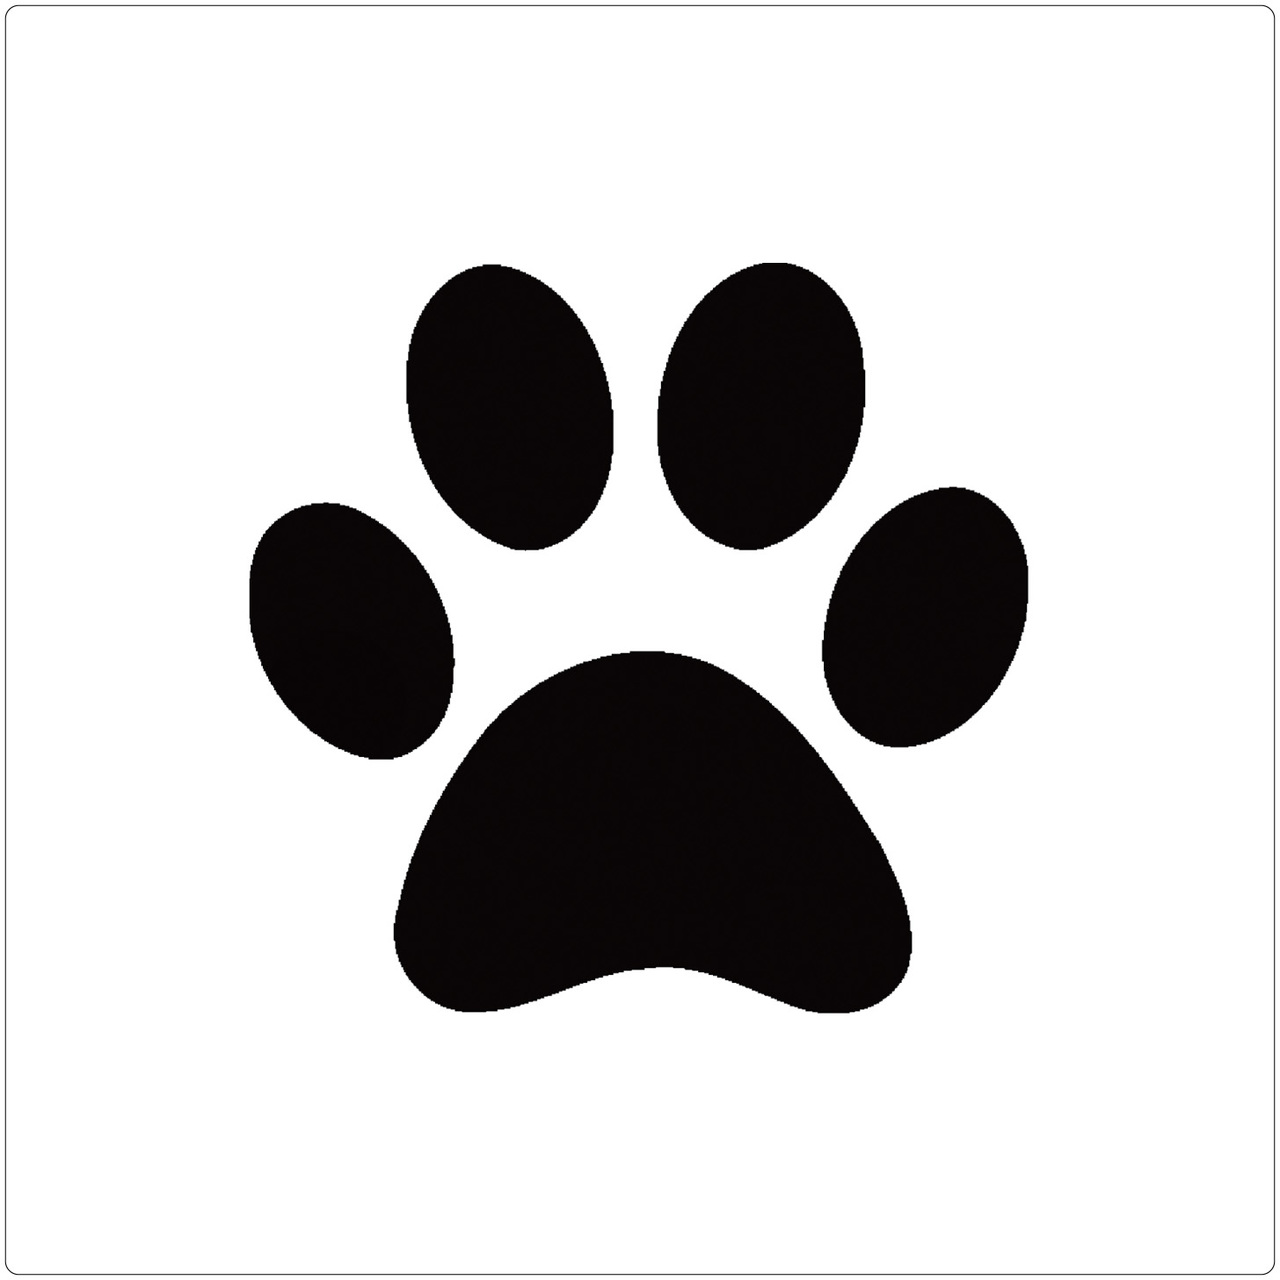 This is an image of Influential Dog Paw Print Stencil Printable Free